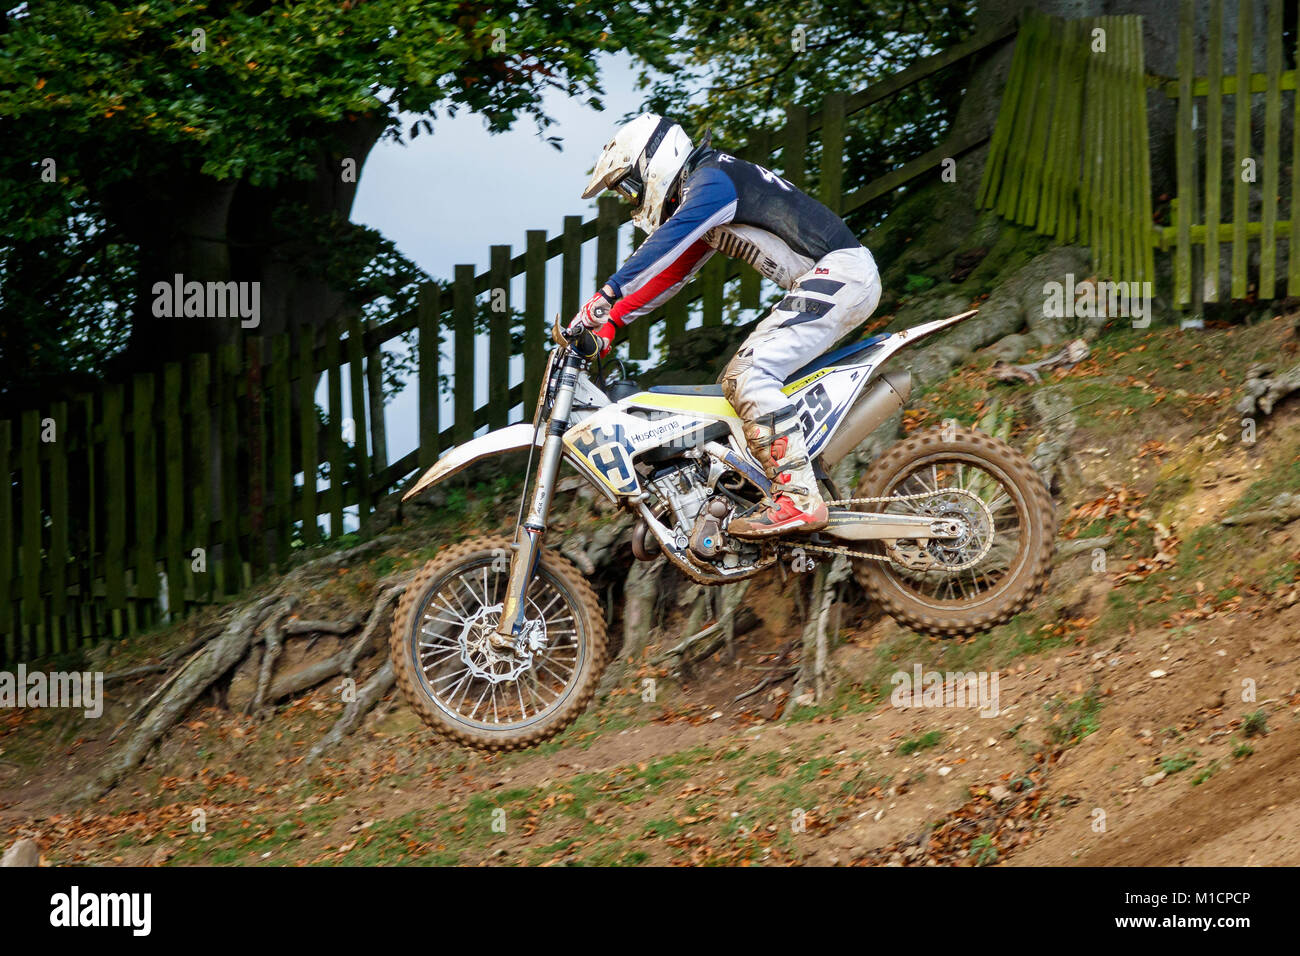 Edward Pegram on the Husqvarna 350 at the NGR & ACU Eastern EVO Motocross Championships, Cadders Hill, Lyng, - Stock Image